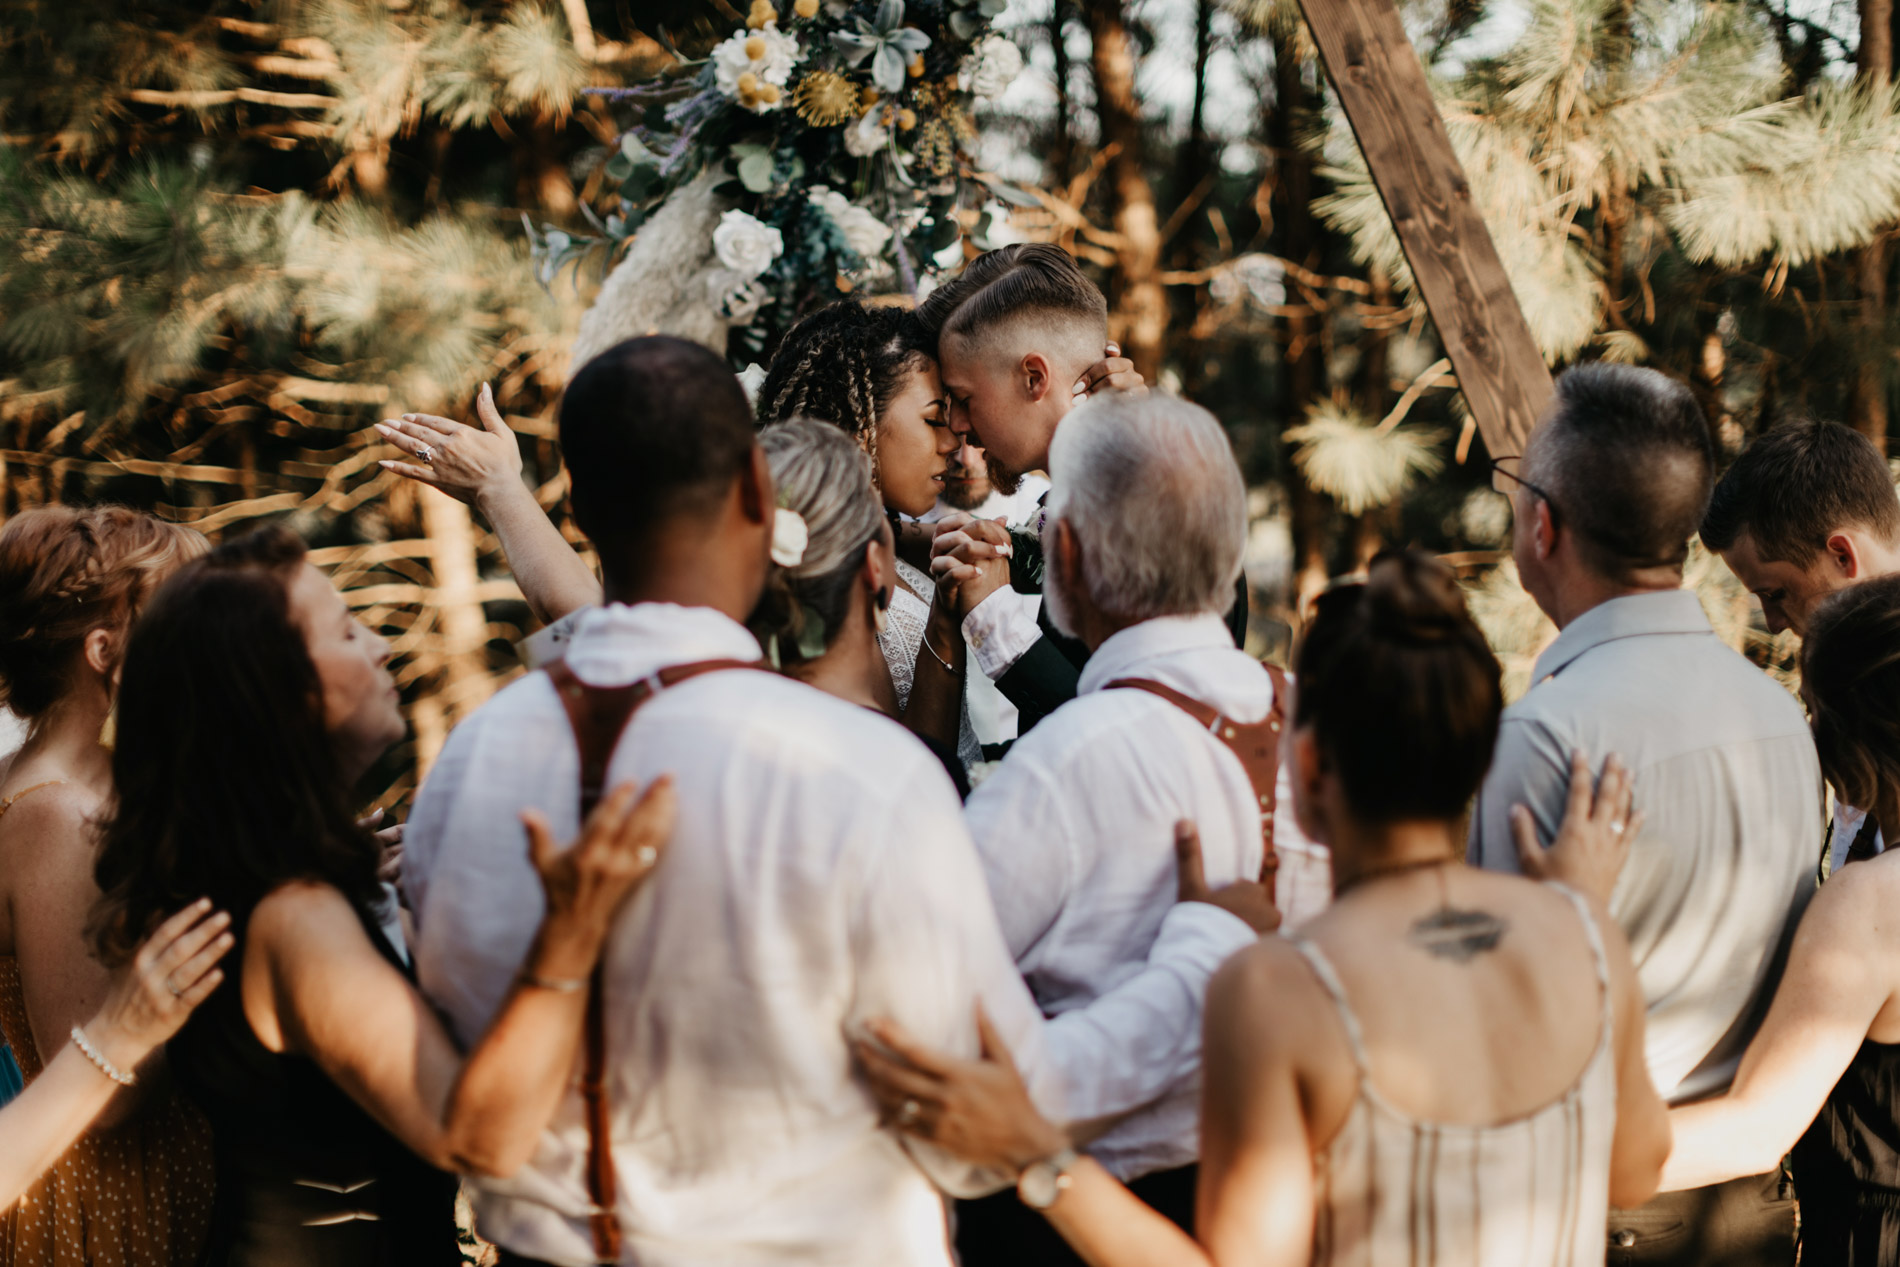 Bride and grooms family praying around them on wedding day